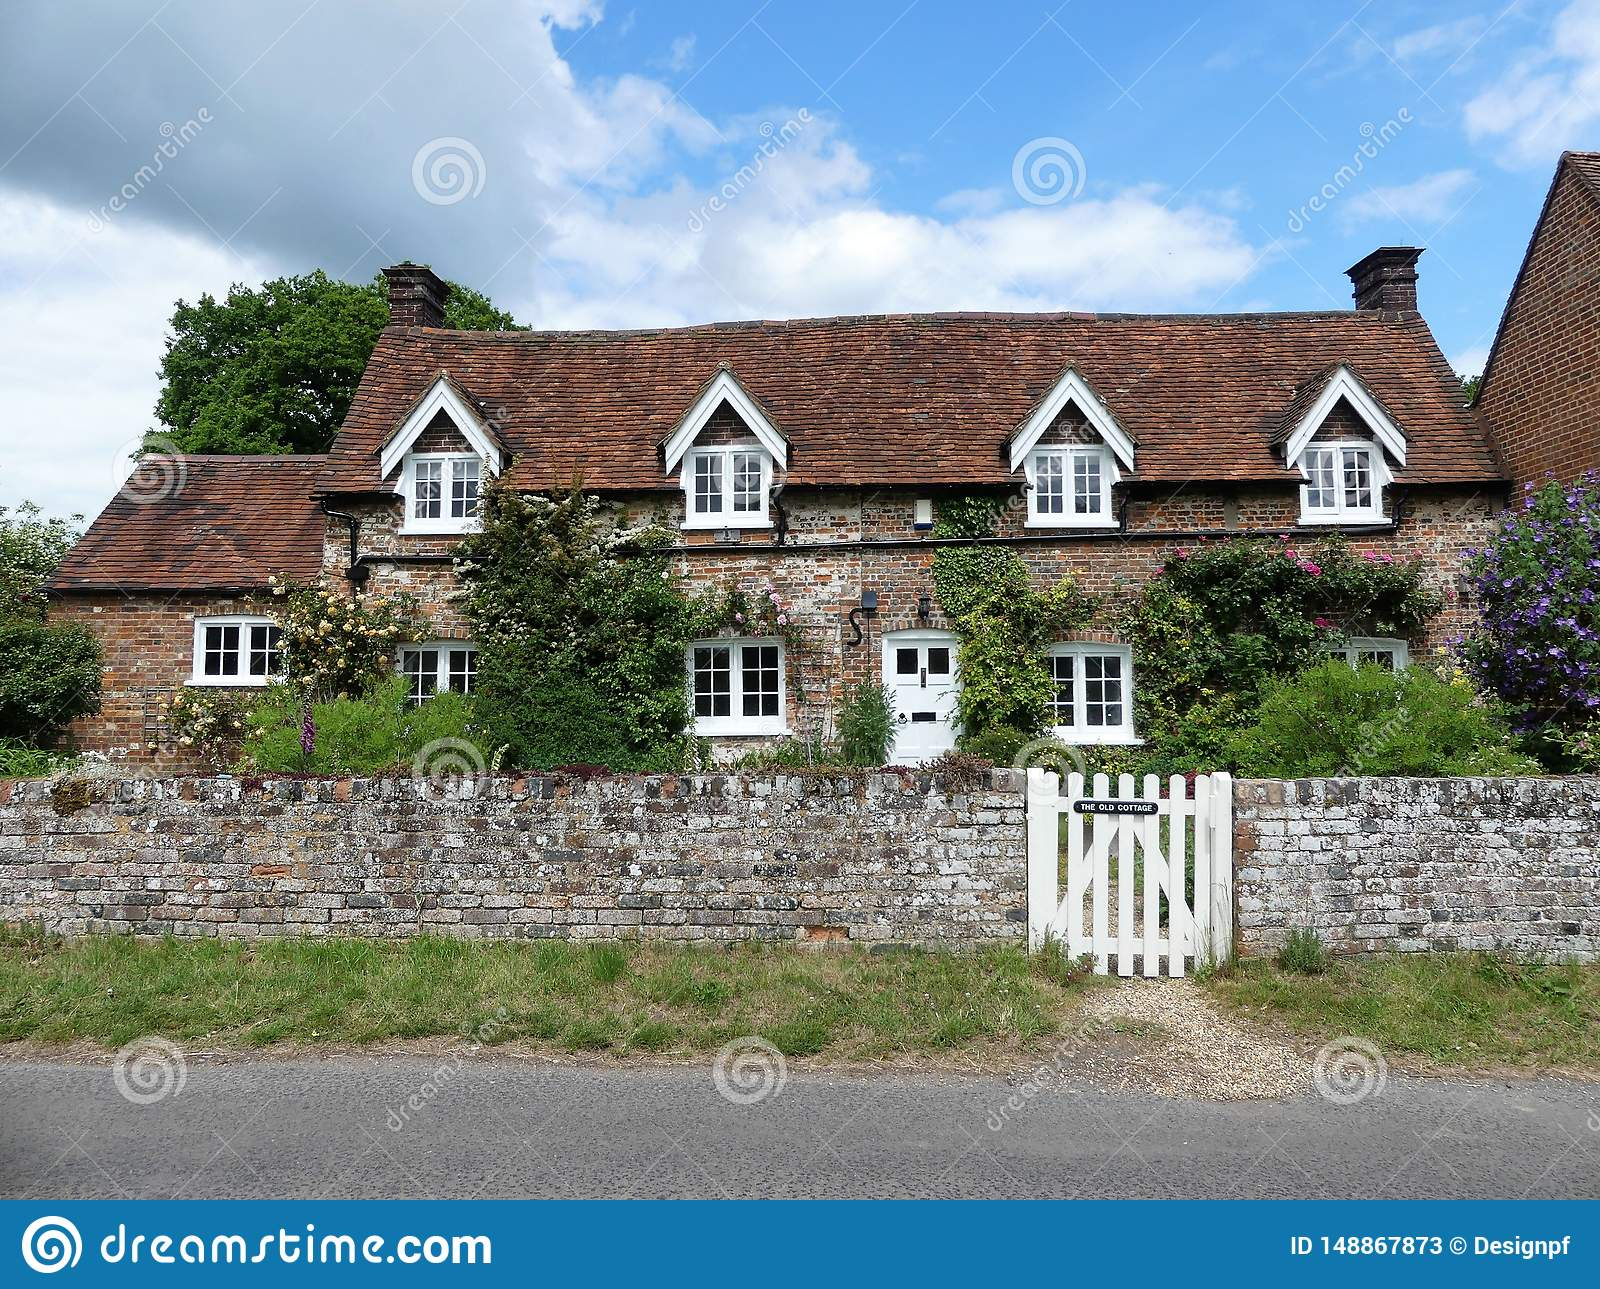 The Old Cottage, The Lee, Buckinghamshire